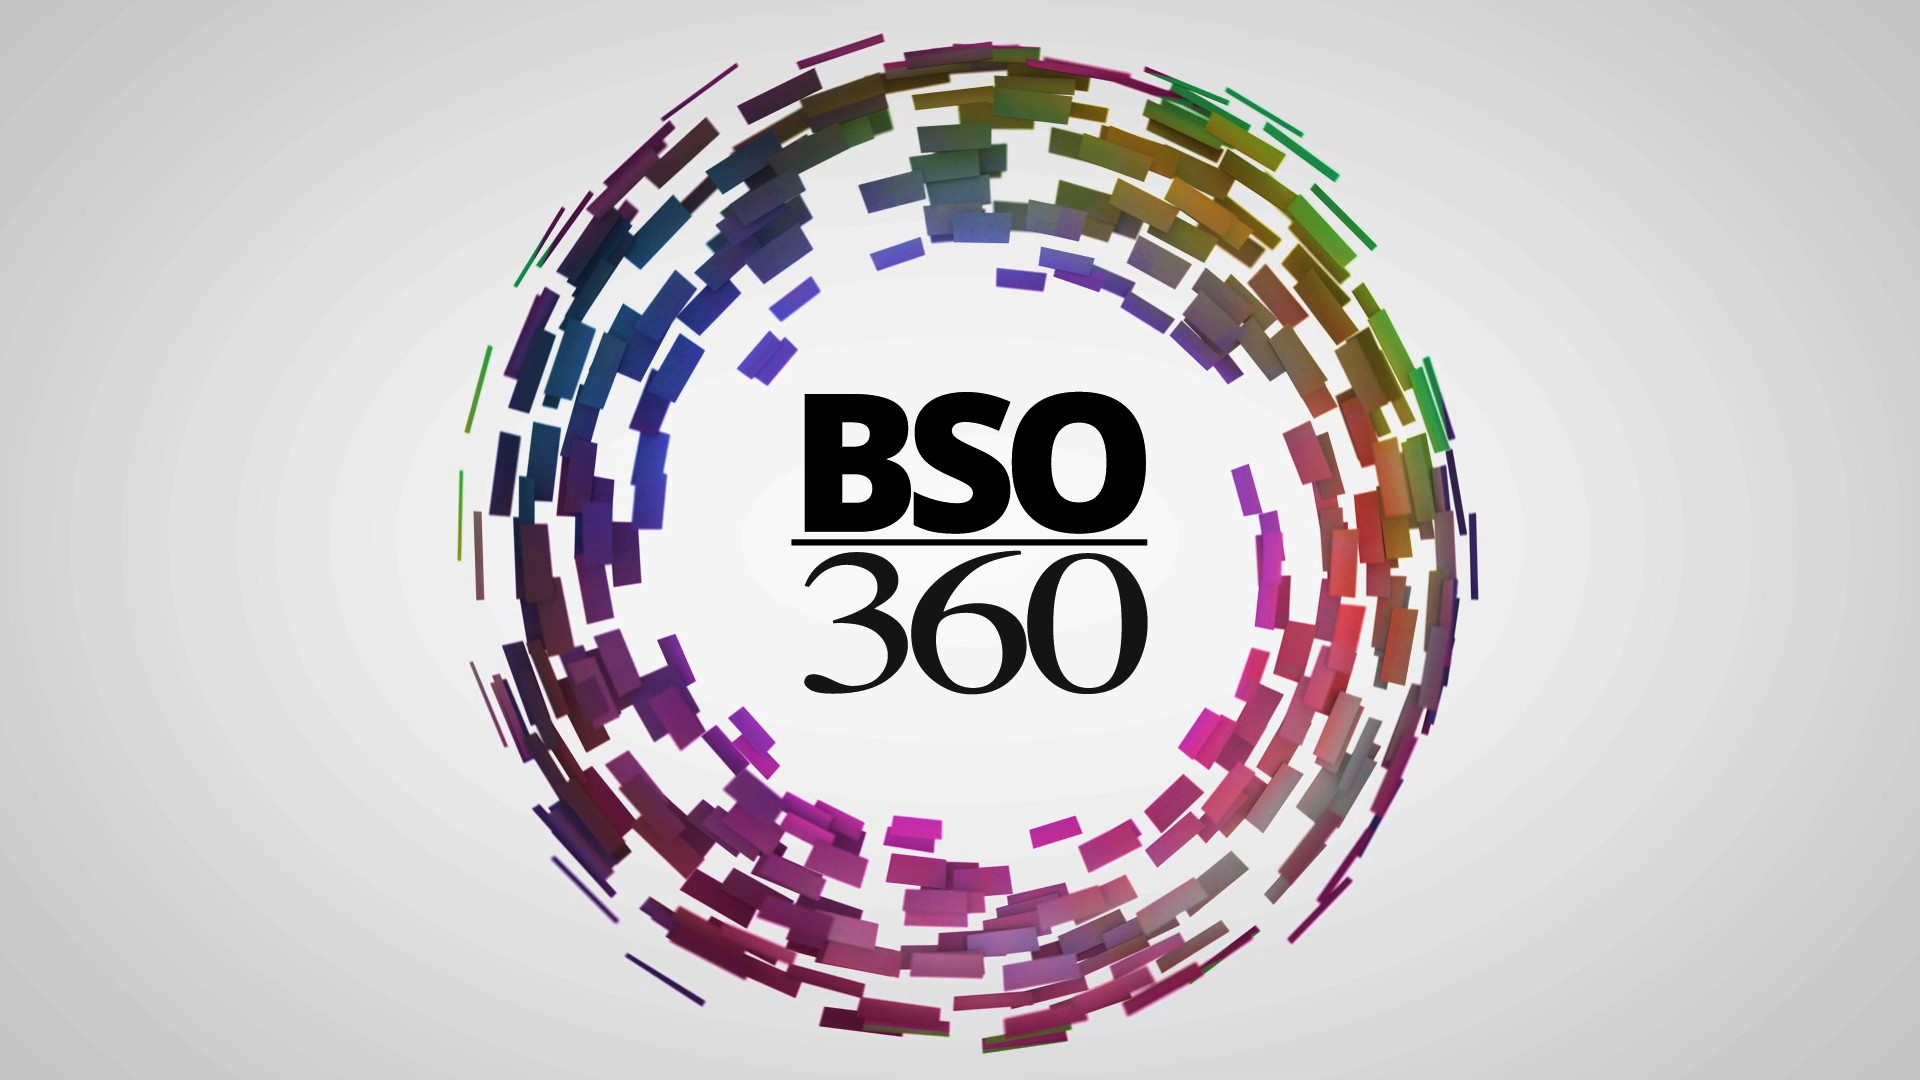 BSO 360